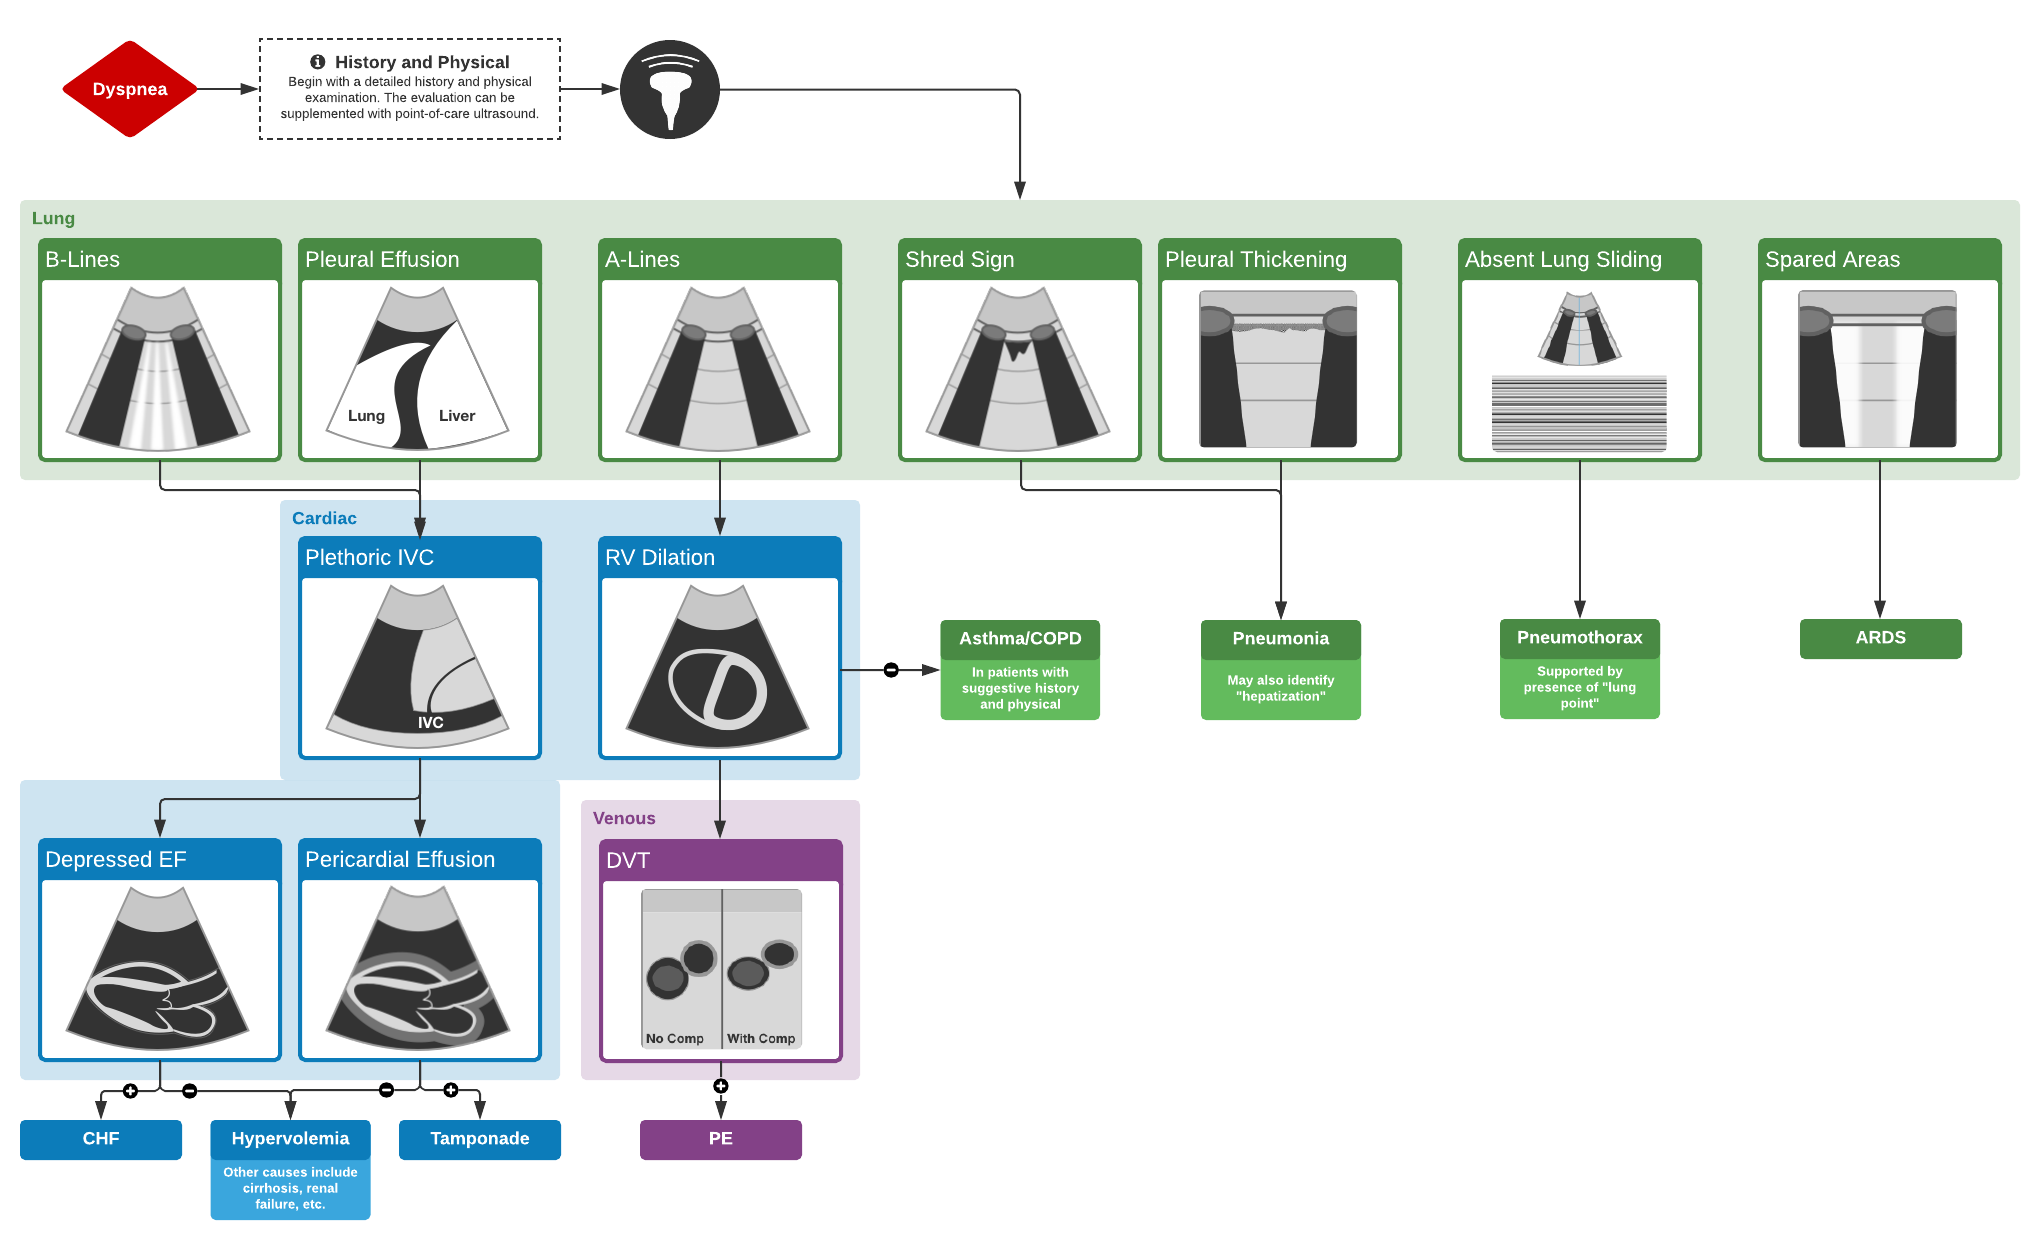 POCUS Lung Algorithm for the Use of Ultrasound in the Evaluation of Dyspnea   #Diagnosis #Management #CriticalCare